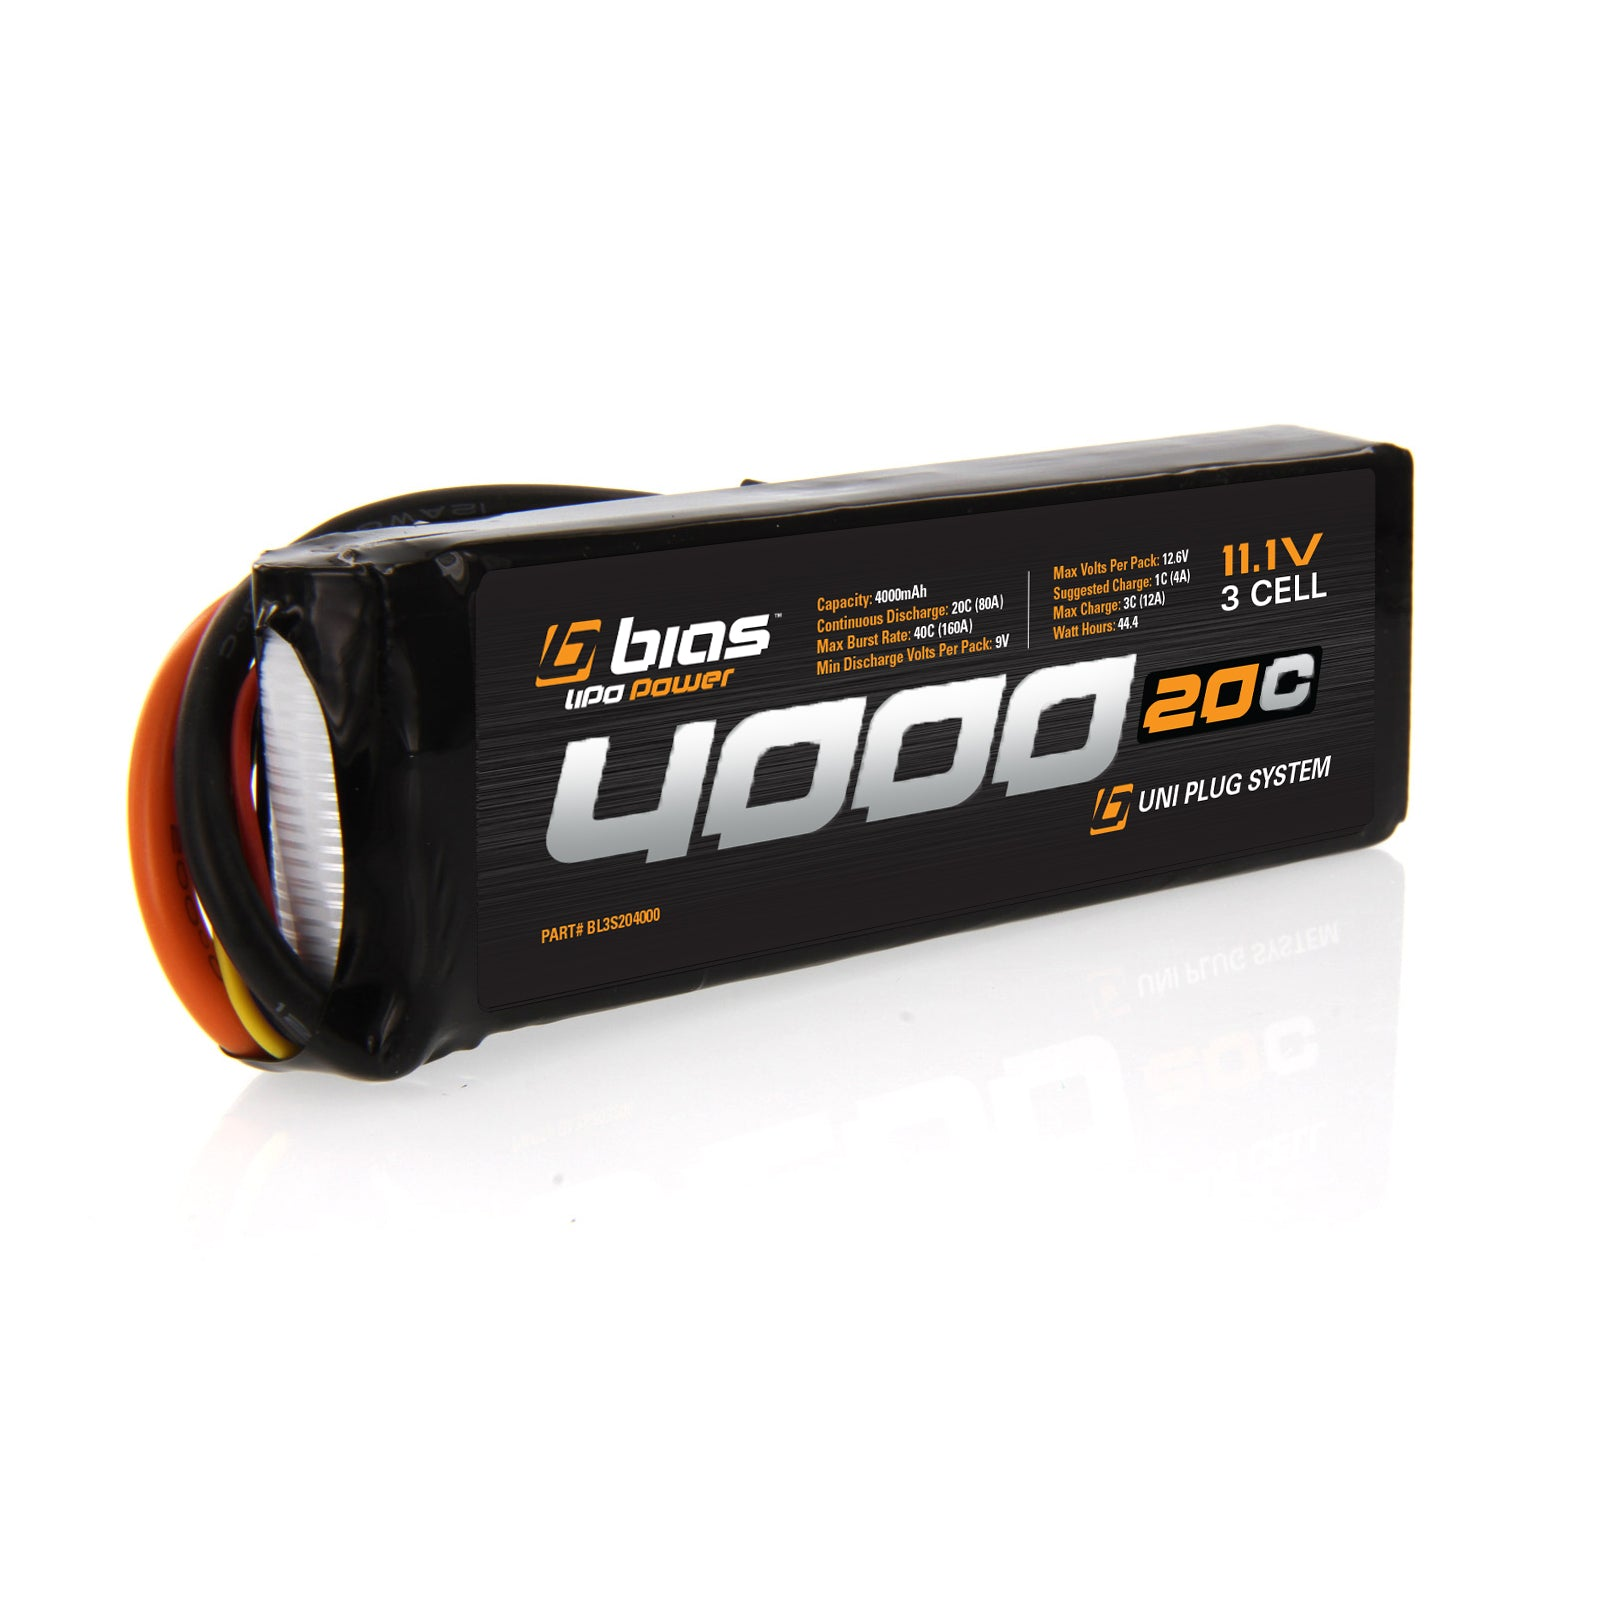 Bias RC 20C 3S 4000mAh 11 1V LiPo Battery Deans Tamiya EC3 Traxxas Plug x2 Packs